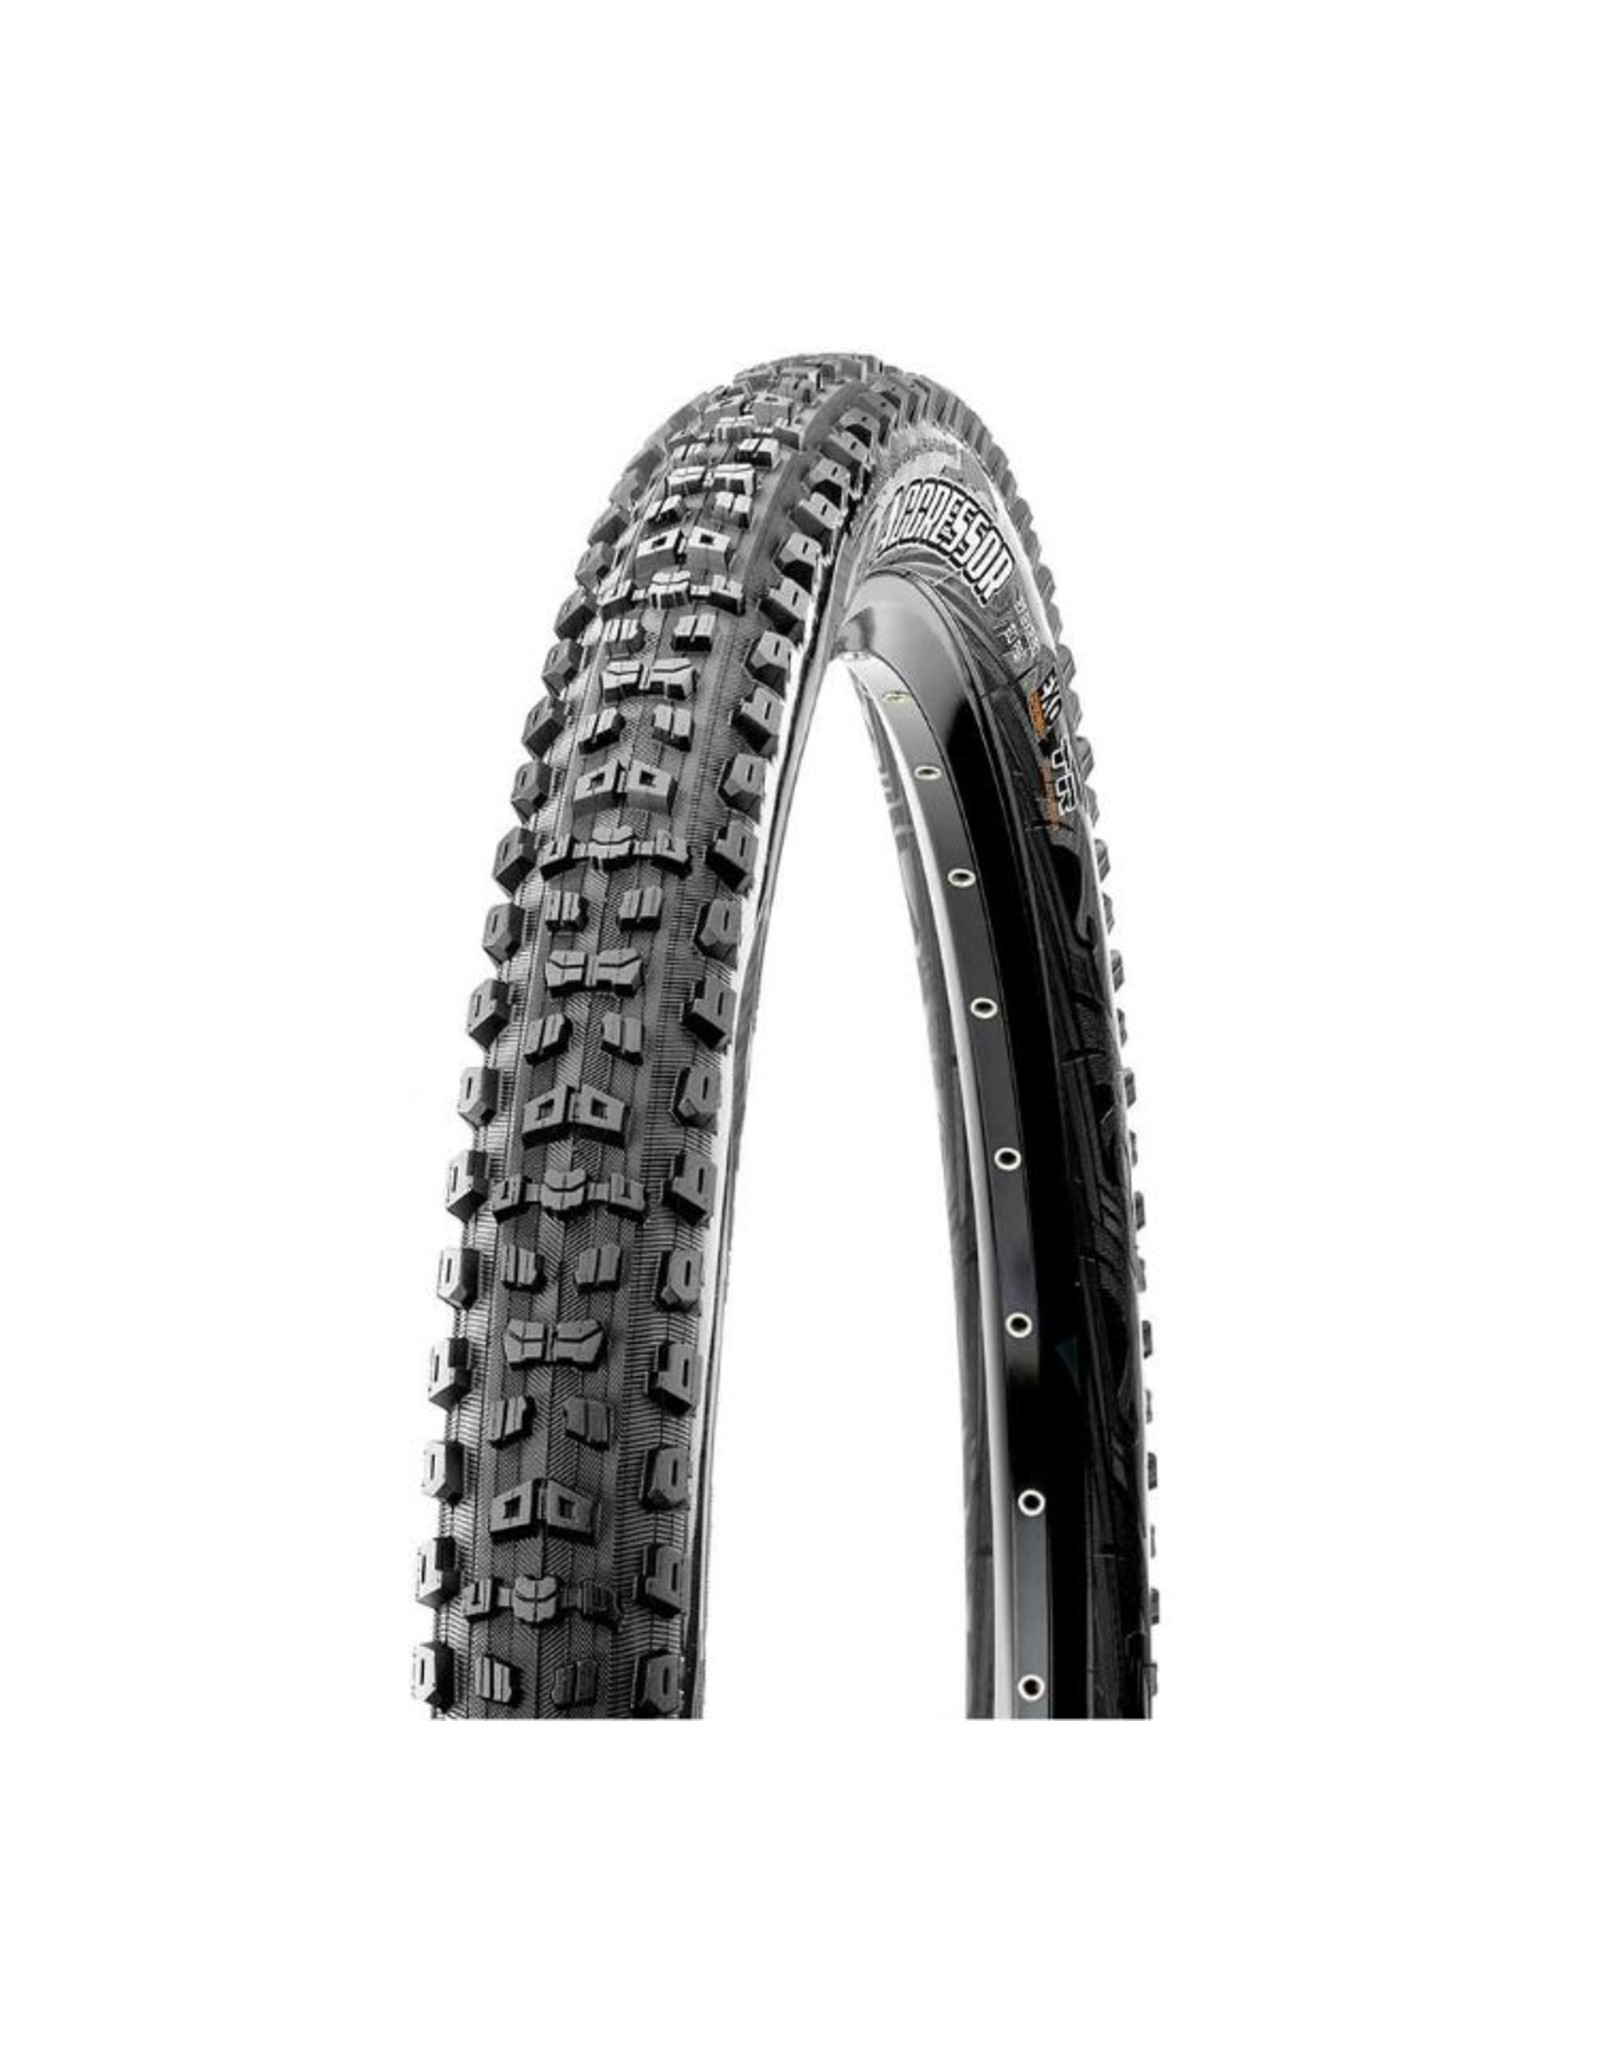 Maxxis PNEU - Maxxis, Aggressor, 27.5x2.30, Pliable, Dual, Double Down, Tubeless Ready, 120TPI, 60PSI, 1050g, Noir